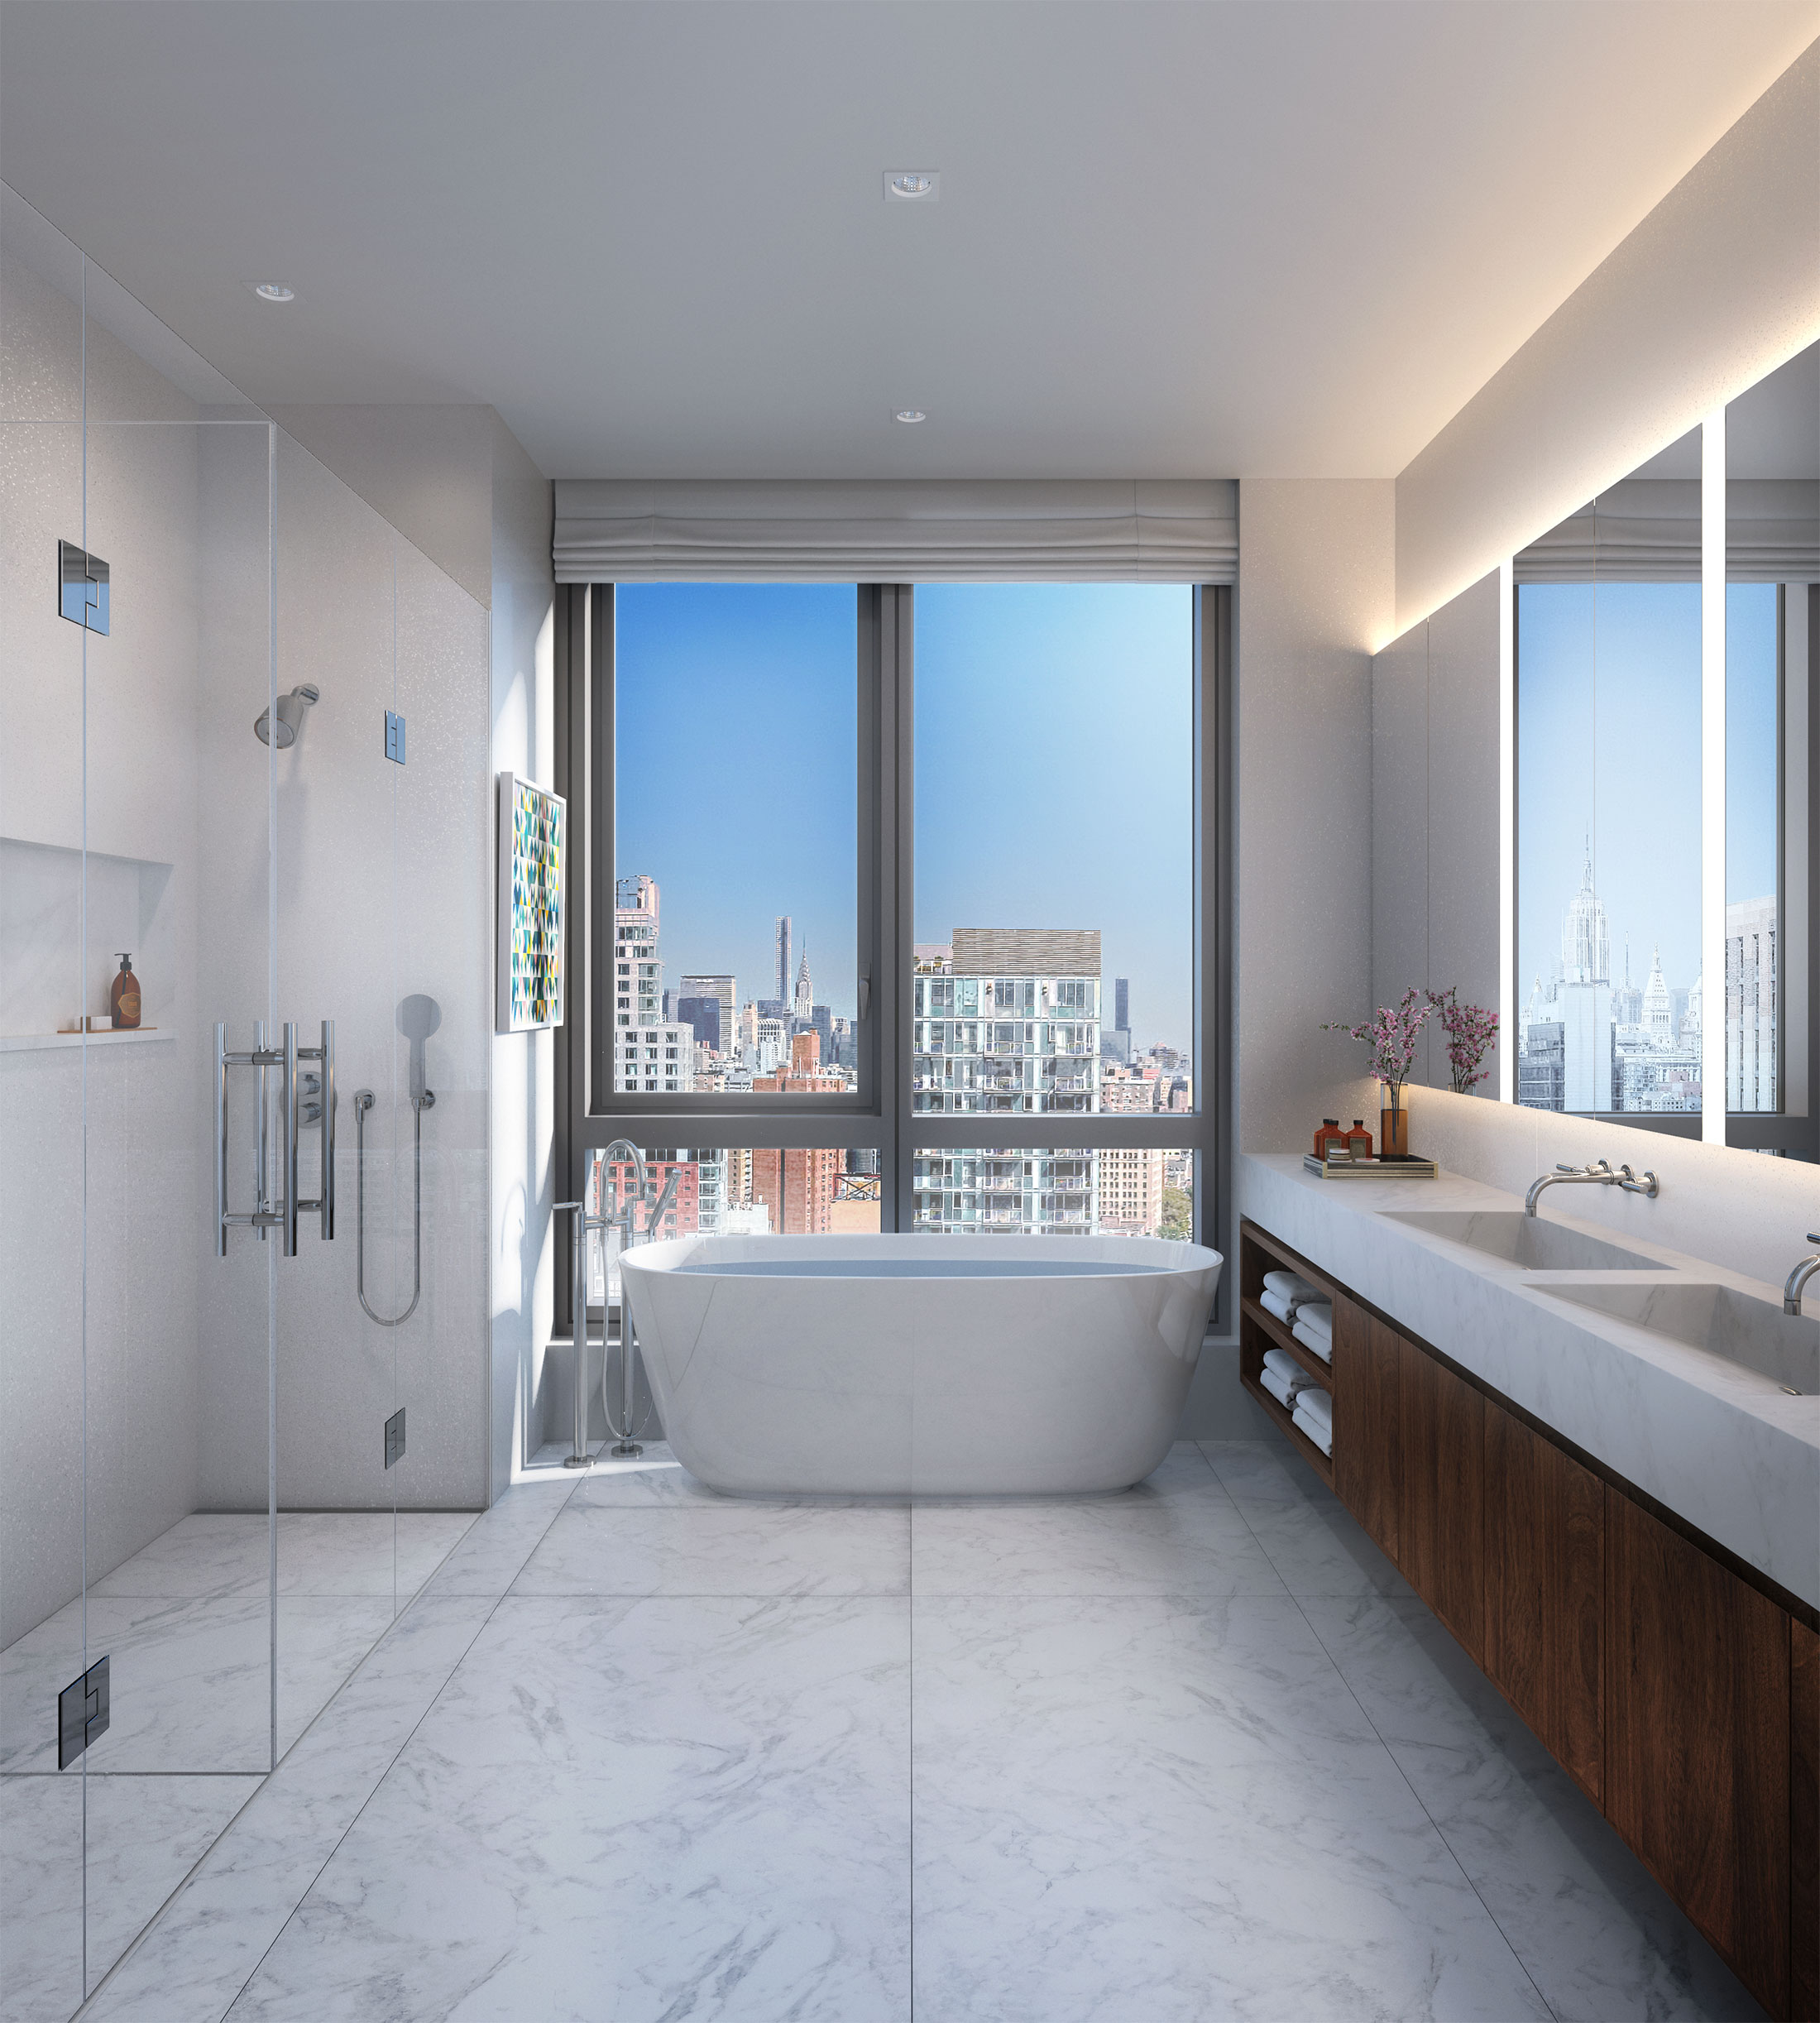 Architectural Rendering of the bathroom of the 242 Broome Street project located on the Lower East Side, New York City